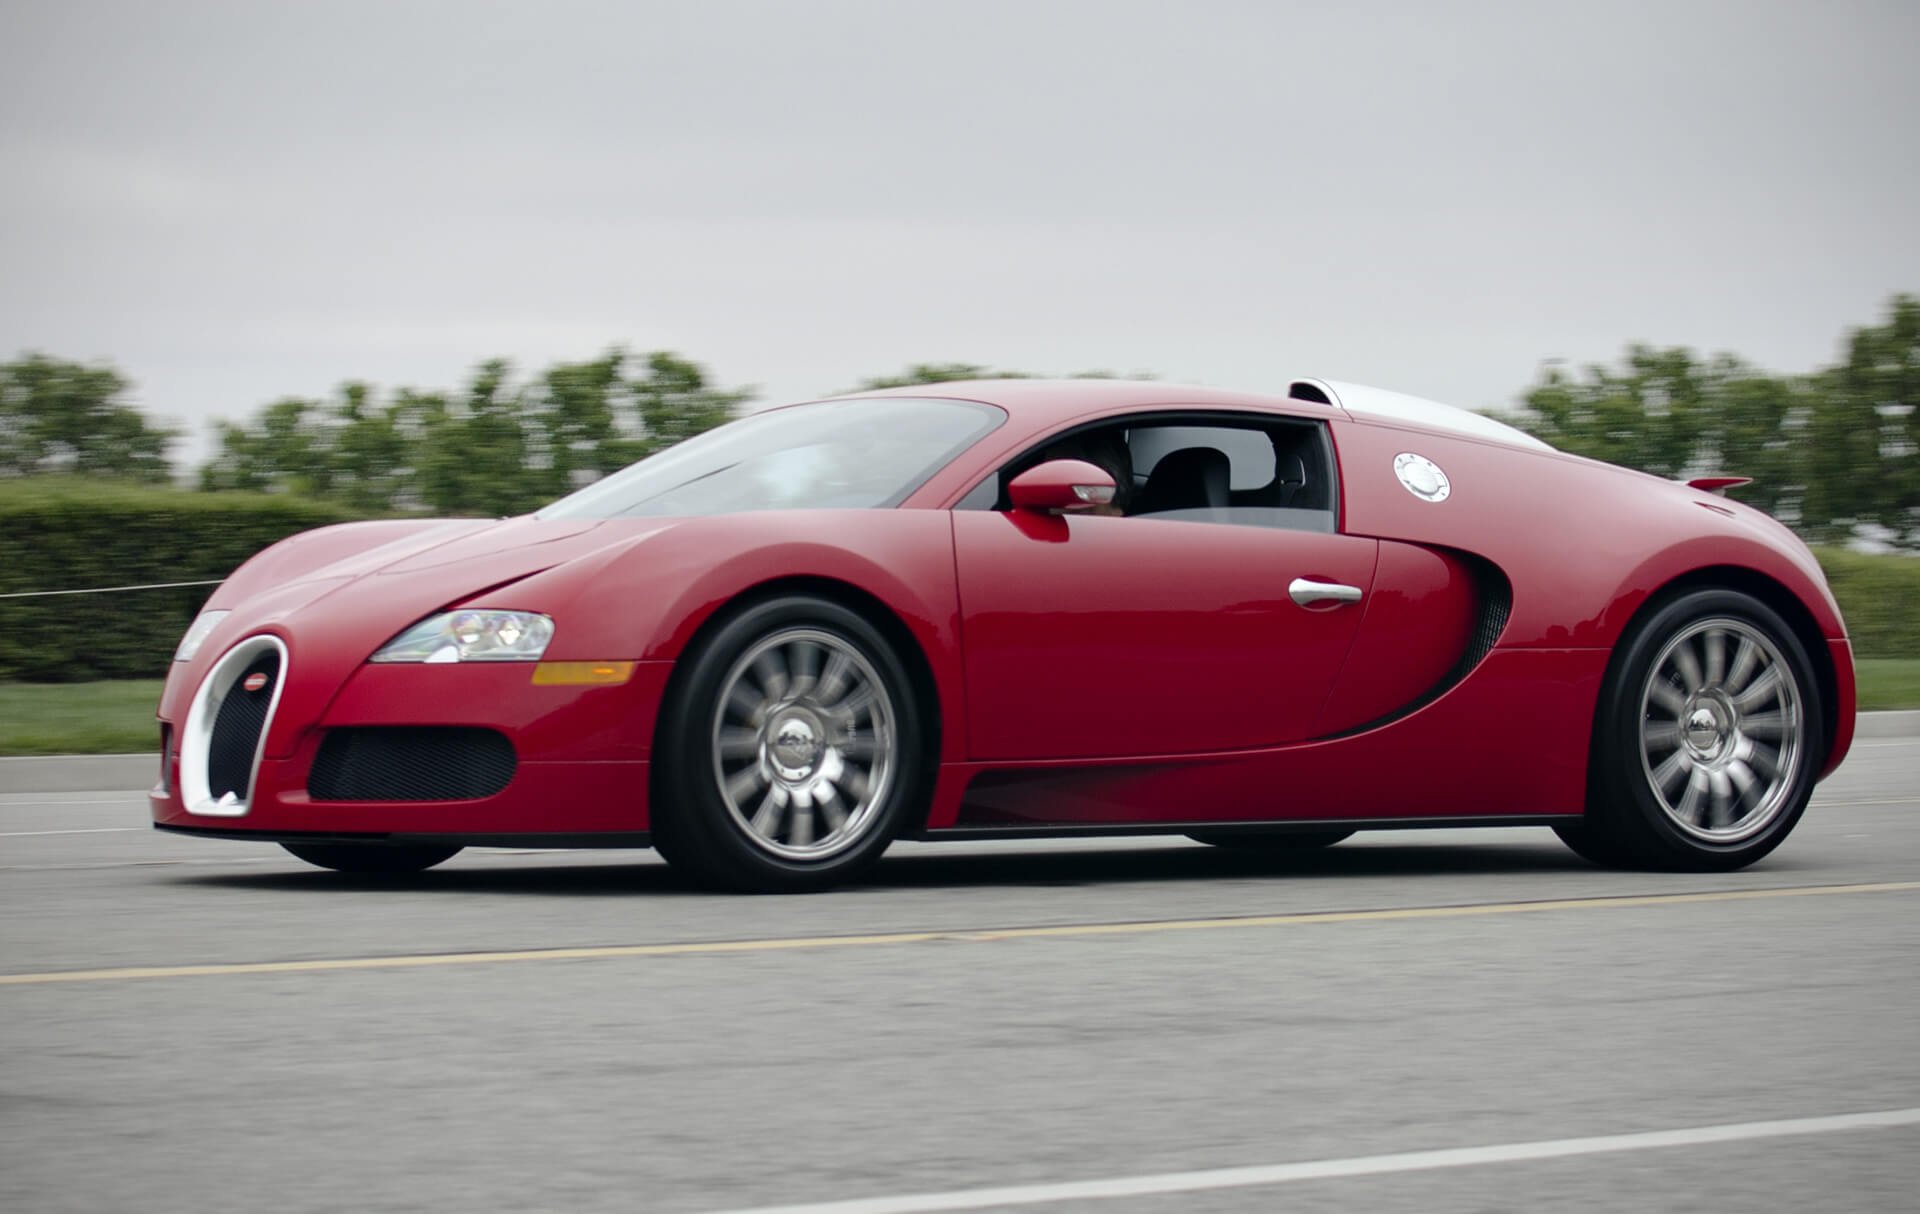 Red Bugatti Veyron on the road